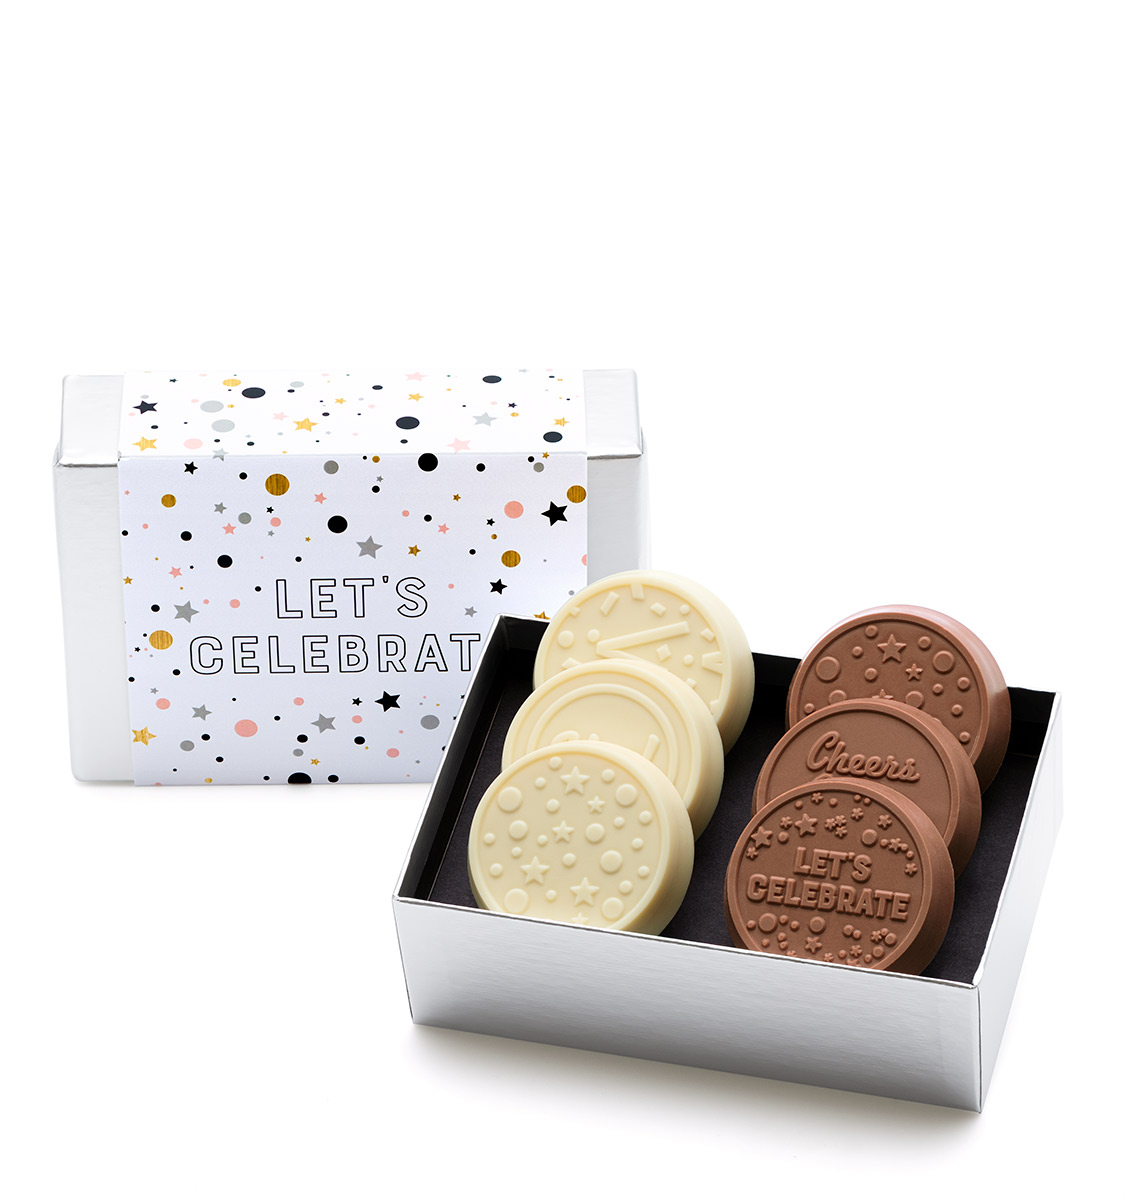 ready-gift-chocolate-SHX206005T-engraved-chocolate-oreos-celebration